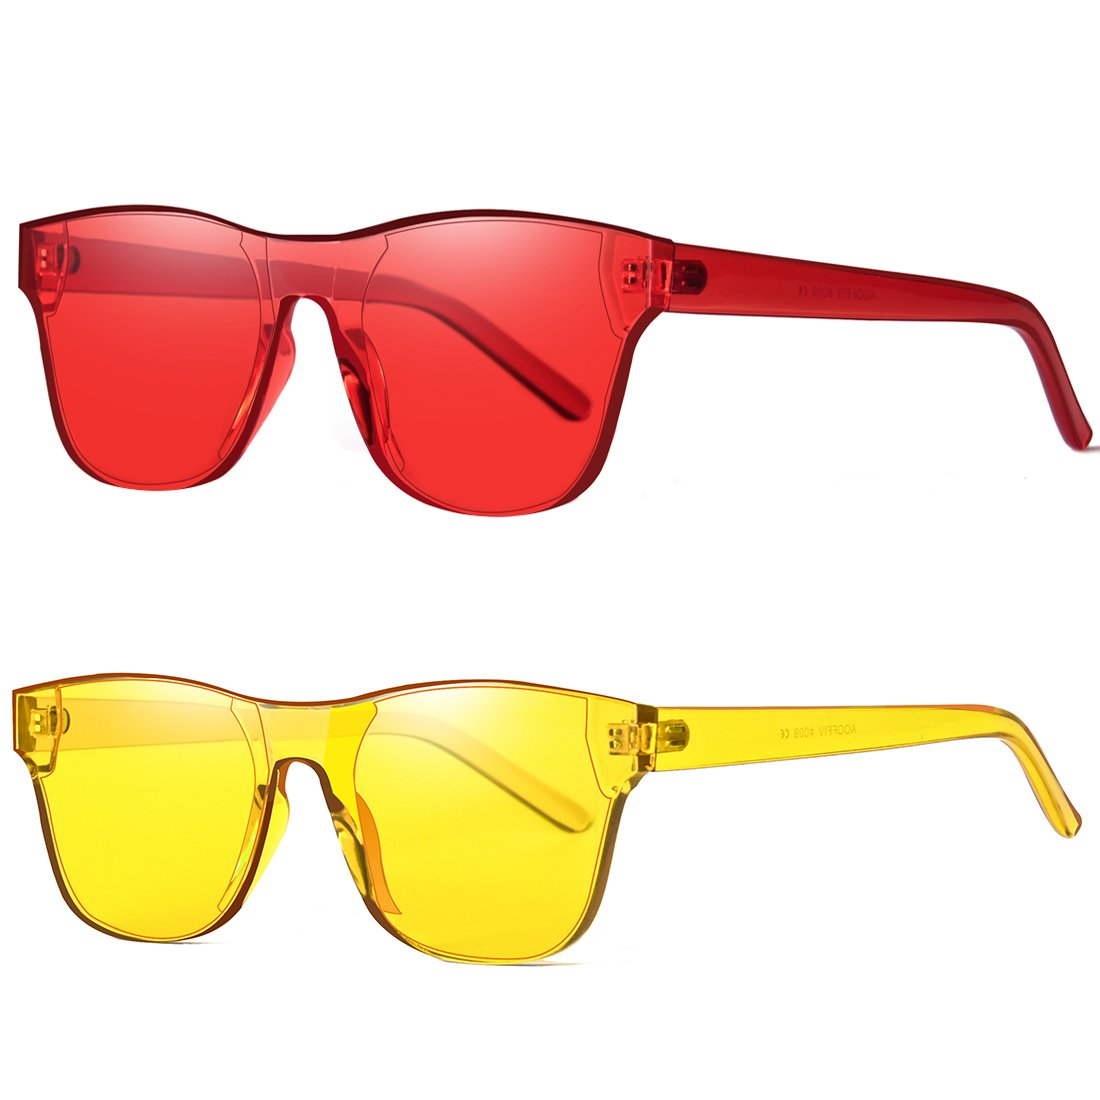 AOOFFIV One Piece Rimless Tinted Sunglasses Transparent Candy Color Wayfarer (Red+Lemon Yellow)